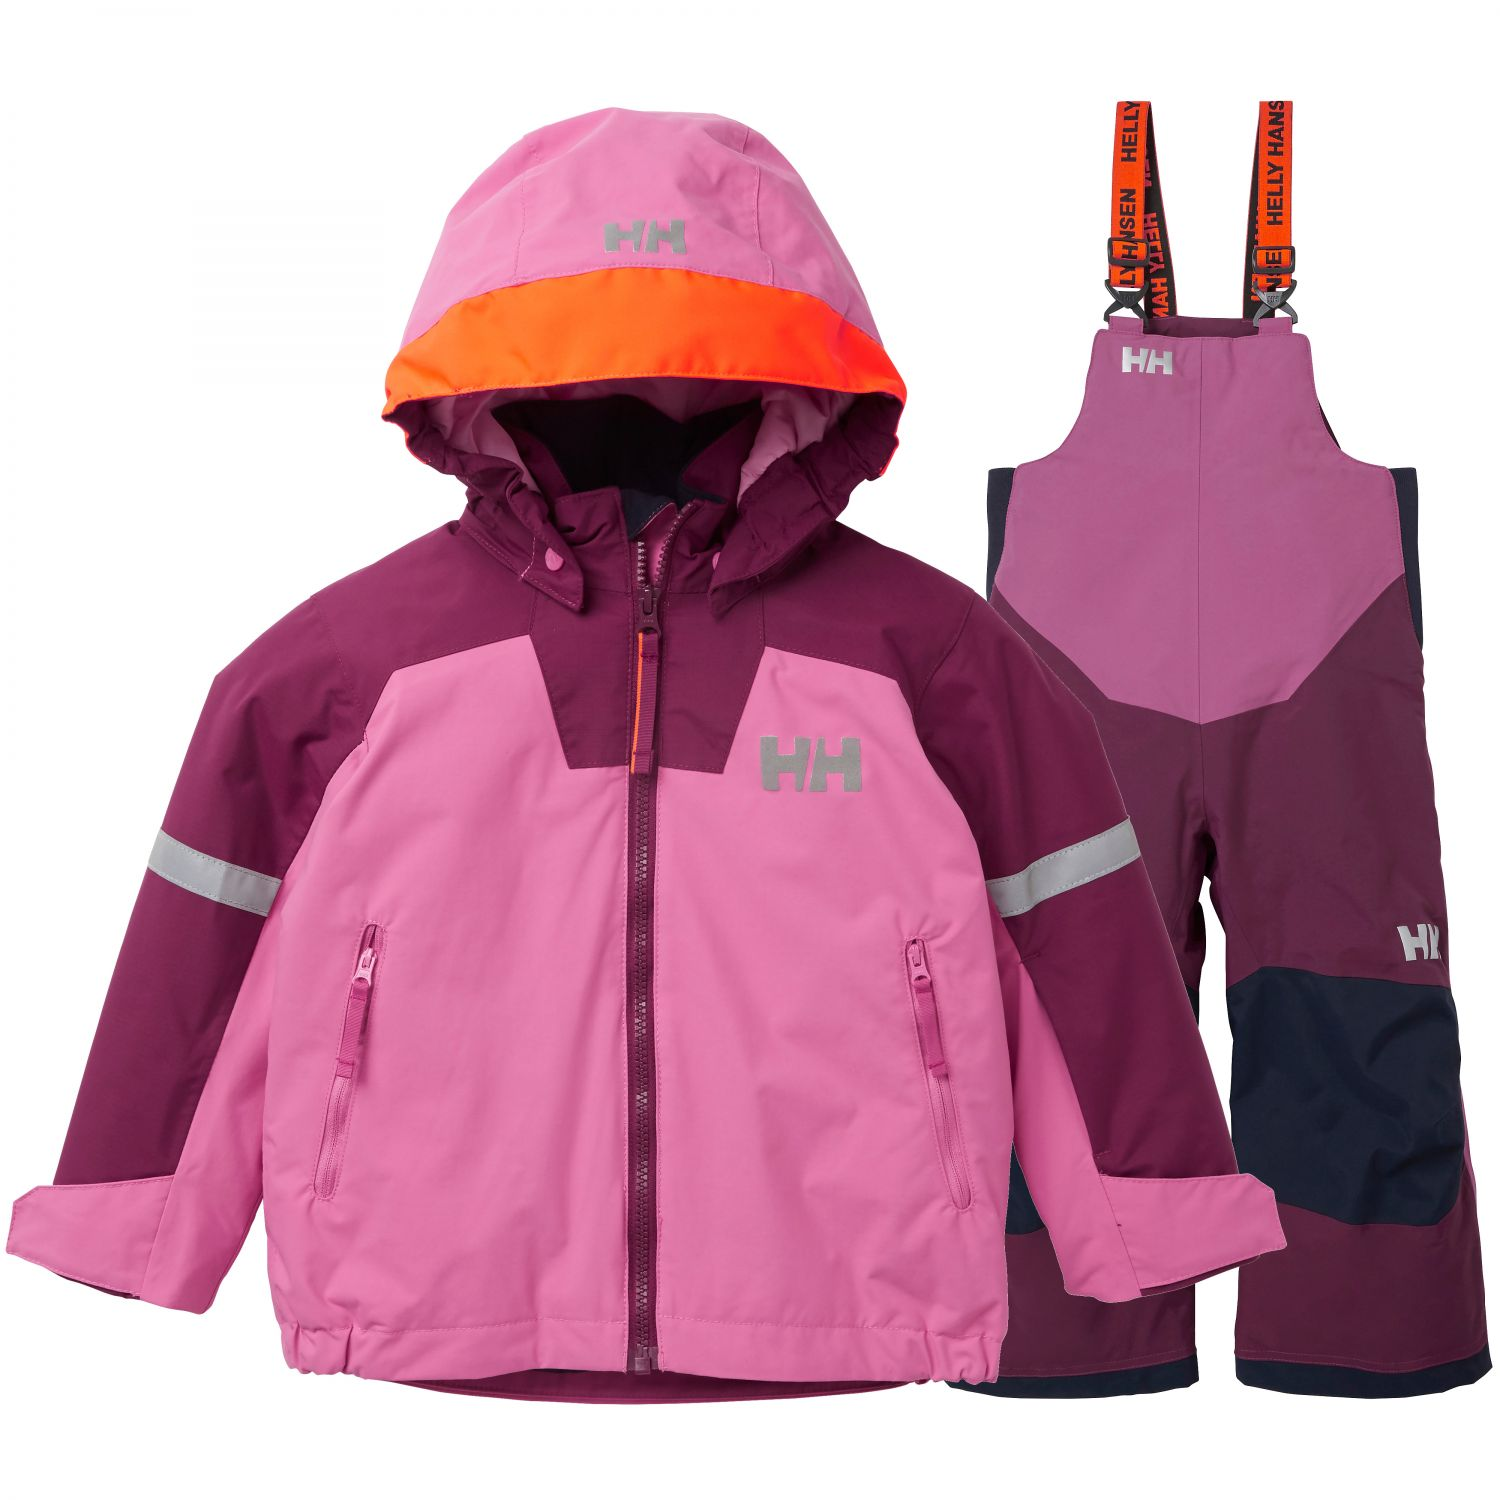 Helly Hansen Legend/Rider Bib, Pink/Purple